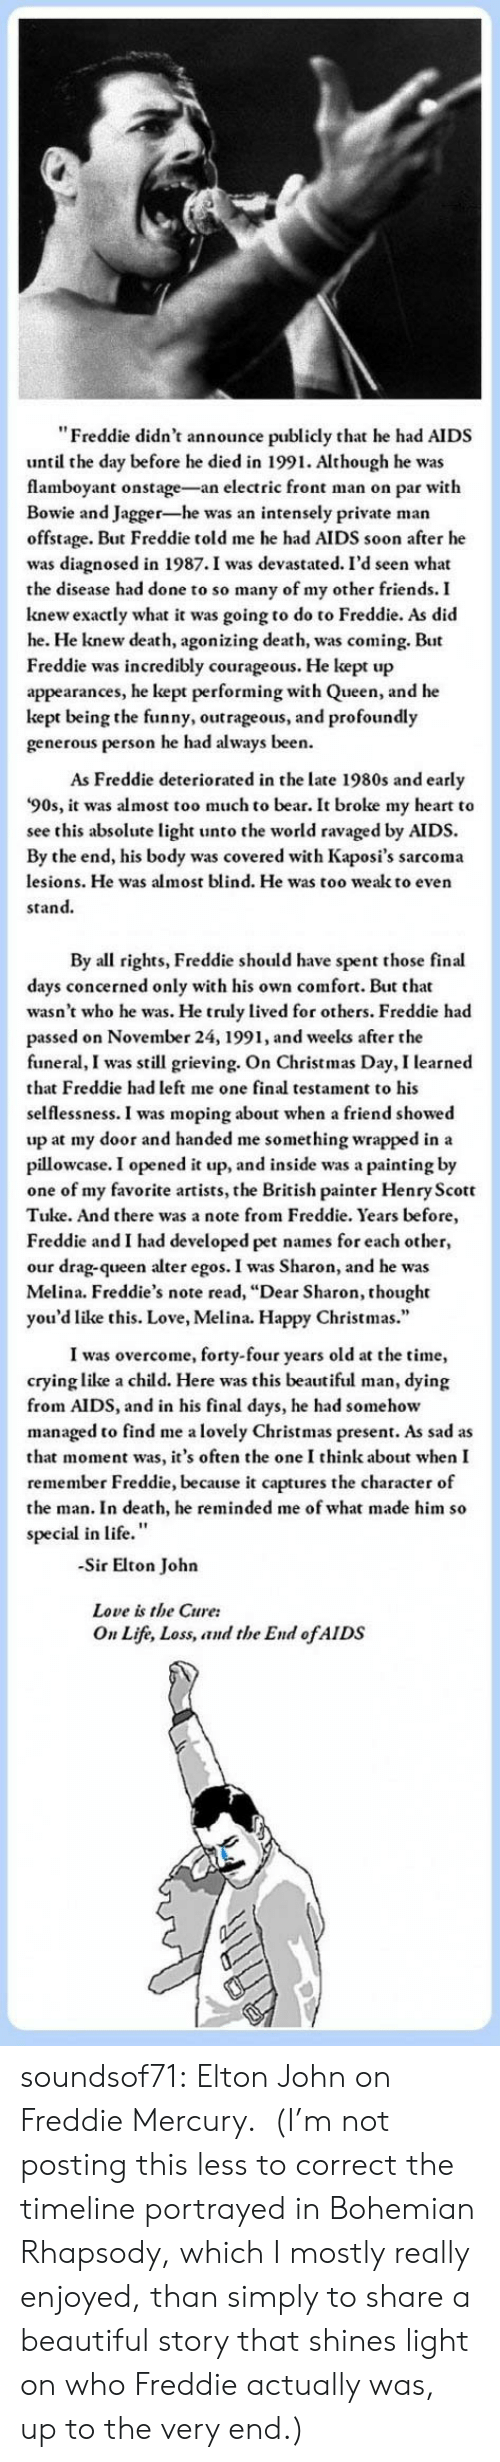 """Beautiful, Christmas, and Crying: """"Freddie didn't announce publicly that he had AIDS  until the day before he died in 1991. Although he was  flamboyant onstage-an electric front man on par with  Bowie and Jagger-he was an intensely private man  offstage. But Freddie told me he had AIDS soon after he  was diagnosed in 1987.I was devastated. I'd seen what  the disease had done to so many of my other friends. I  knew exactly what it was going to do to Freddie. As did  he. He knew death, agonizing death, was coming. But  Freddie was incredibly courageous. He kept up  appearances, he kept performing with Queen, and he  kept being the funny, outrageous, and profoundly  generous person he had always been.  As Freddie deteriorated in the late 1980s and early  '90s, it was almost too much to bear. It broke my heart to  see this absolute light unto the world ravaged by AIDS.  By the end, his body was covered with Kaposi's sarcoma  lesions. He was almost blind. He was too wealk to even  stand.   By all rights, Freddie should have spent those final  days concerned only with his own comfort. But that  wasn't who he was. He truly lived for others. Freddie had  passed on November 24, 1991, and weelks after the  funeral, I was still grieving. On Christmas Day, I learned  that Freddie had left me one final testament to his  selflessness. I was moping about when a friend showed  up at my door and handed me something wrapped in a  pillowcase. I opened it up, and inside was a painting by  one of my favorite artists, the British painter Henry Scott  Tuke. And there was a note from Freddie. Years before  Freddie and I had developed pet names for each other,  our drag-queen alter egos. I was Sharon, and he was  Melina. Freddie's note read, """"Dear Sharon, thought  you'd like this. Love, Melina. Happy Christmas.""""  I was overcome, forty-four years old at the time,  crying like a child. Here was this beautiful man, dying  from AIDS, and in his final days, he had somehow  managed to find me a l"""